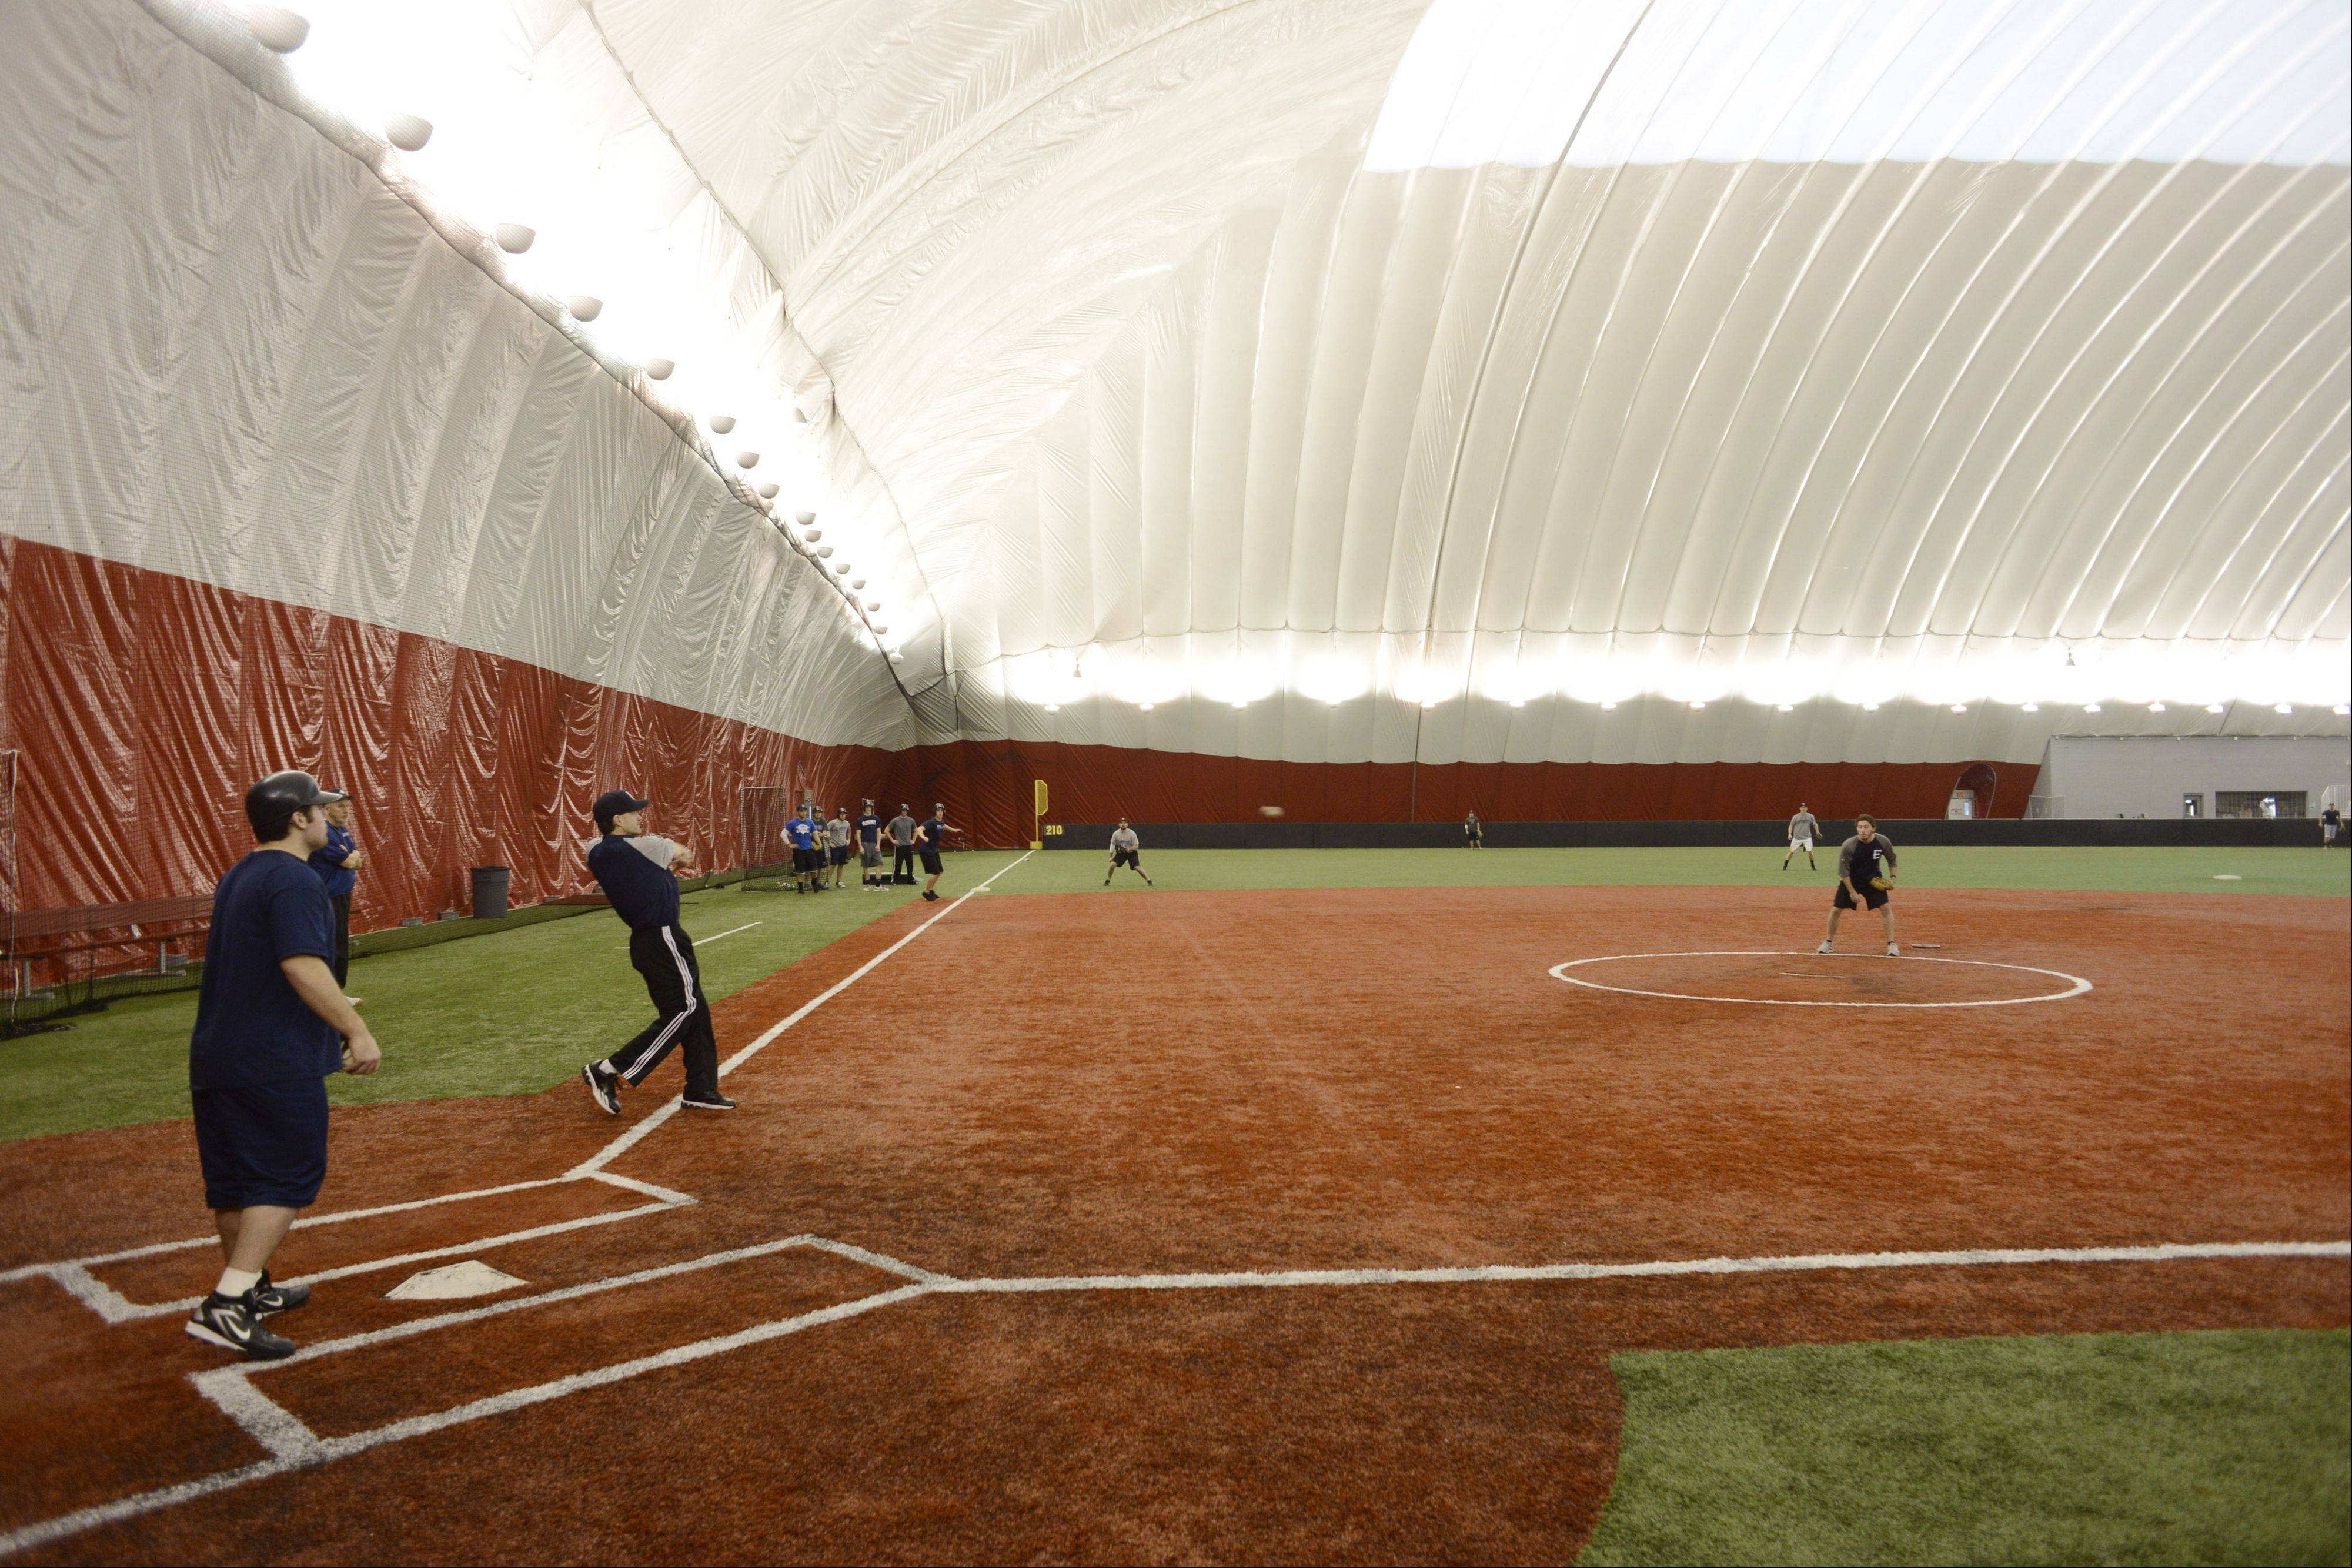 The Dome at the Ballpark in Rosemont is the latest indoor sports attraction. The Chicago Bandits will also use it as a practice facility when they can't use the stadium.